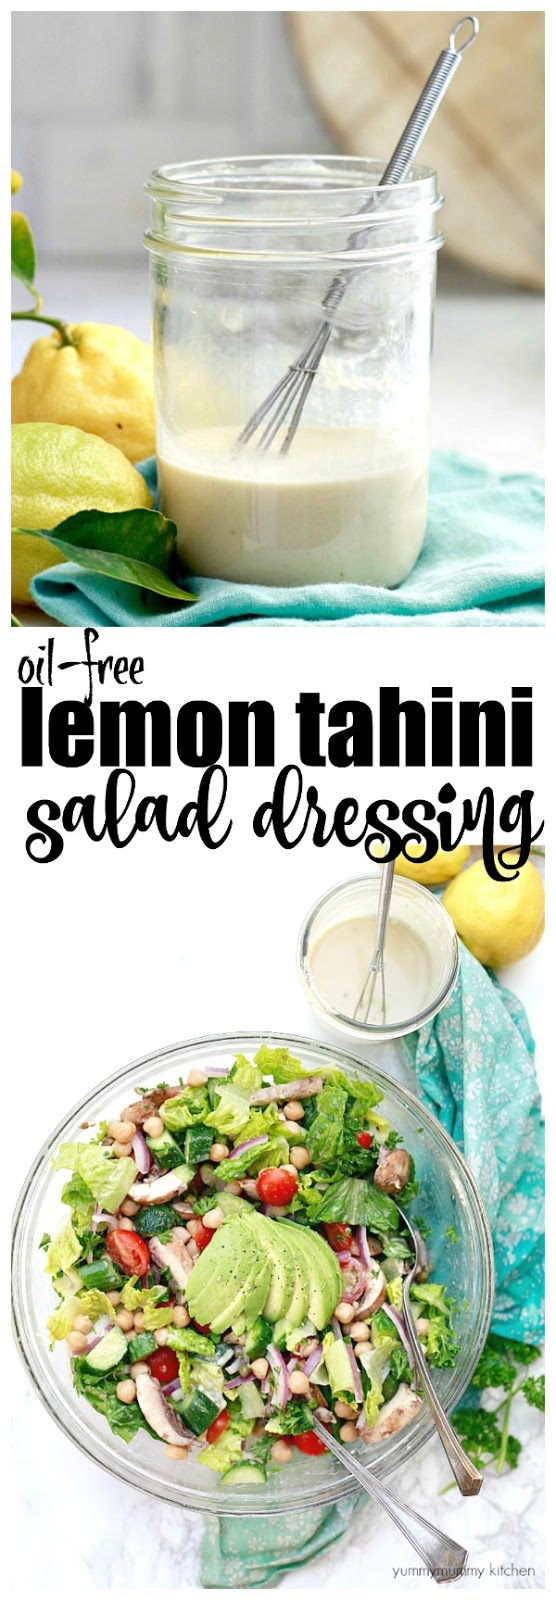 oil-free-lemon-tahini-dressing.jpg